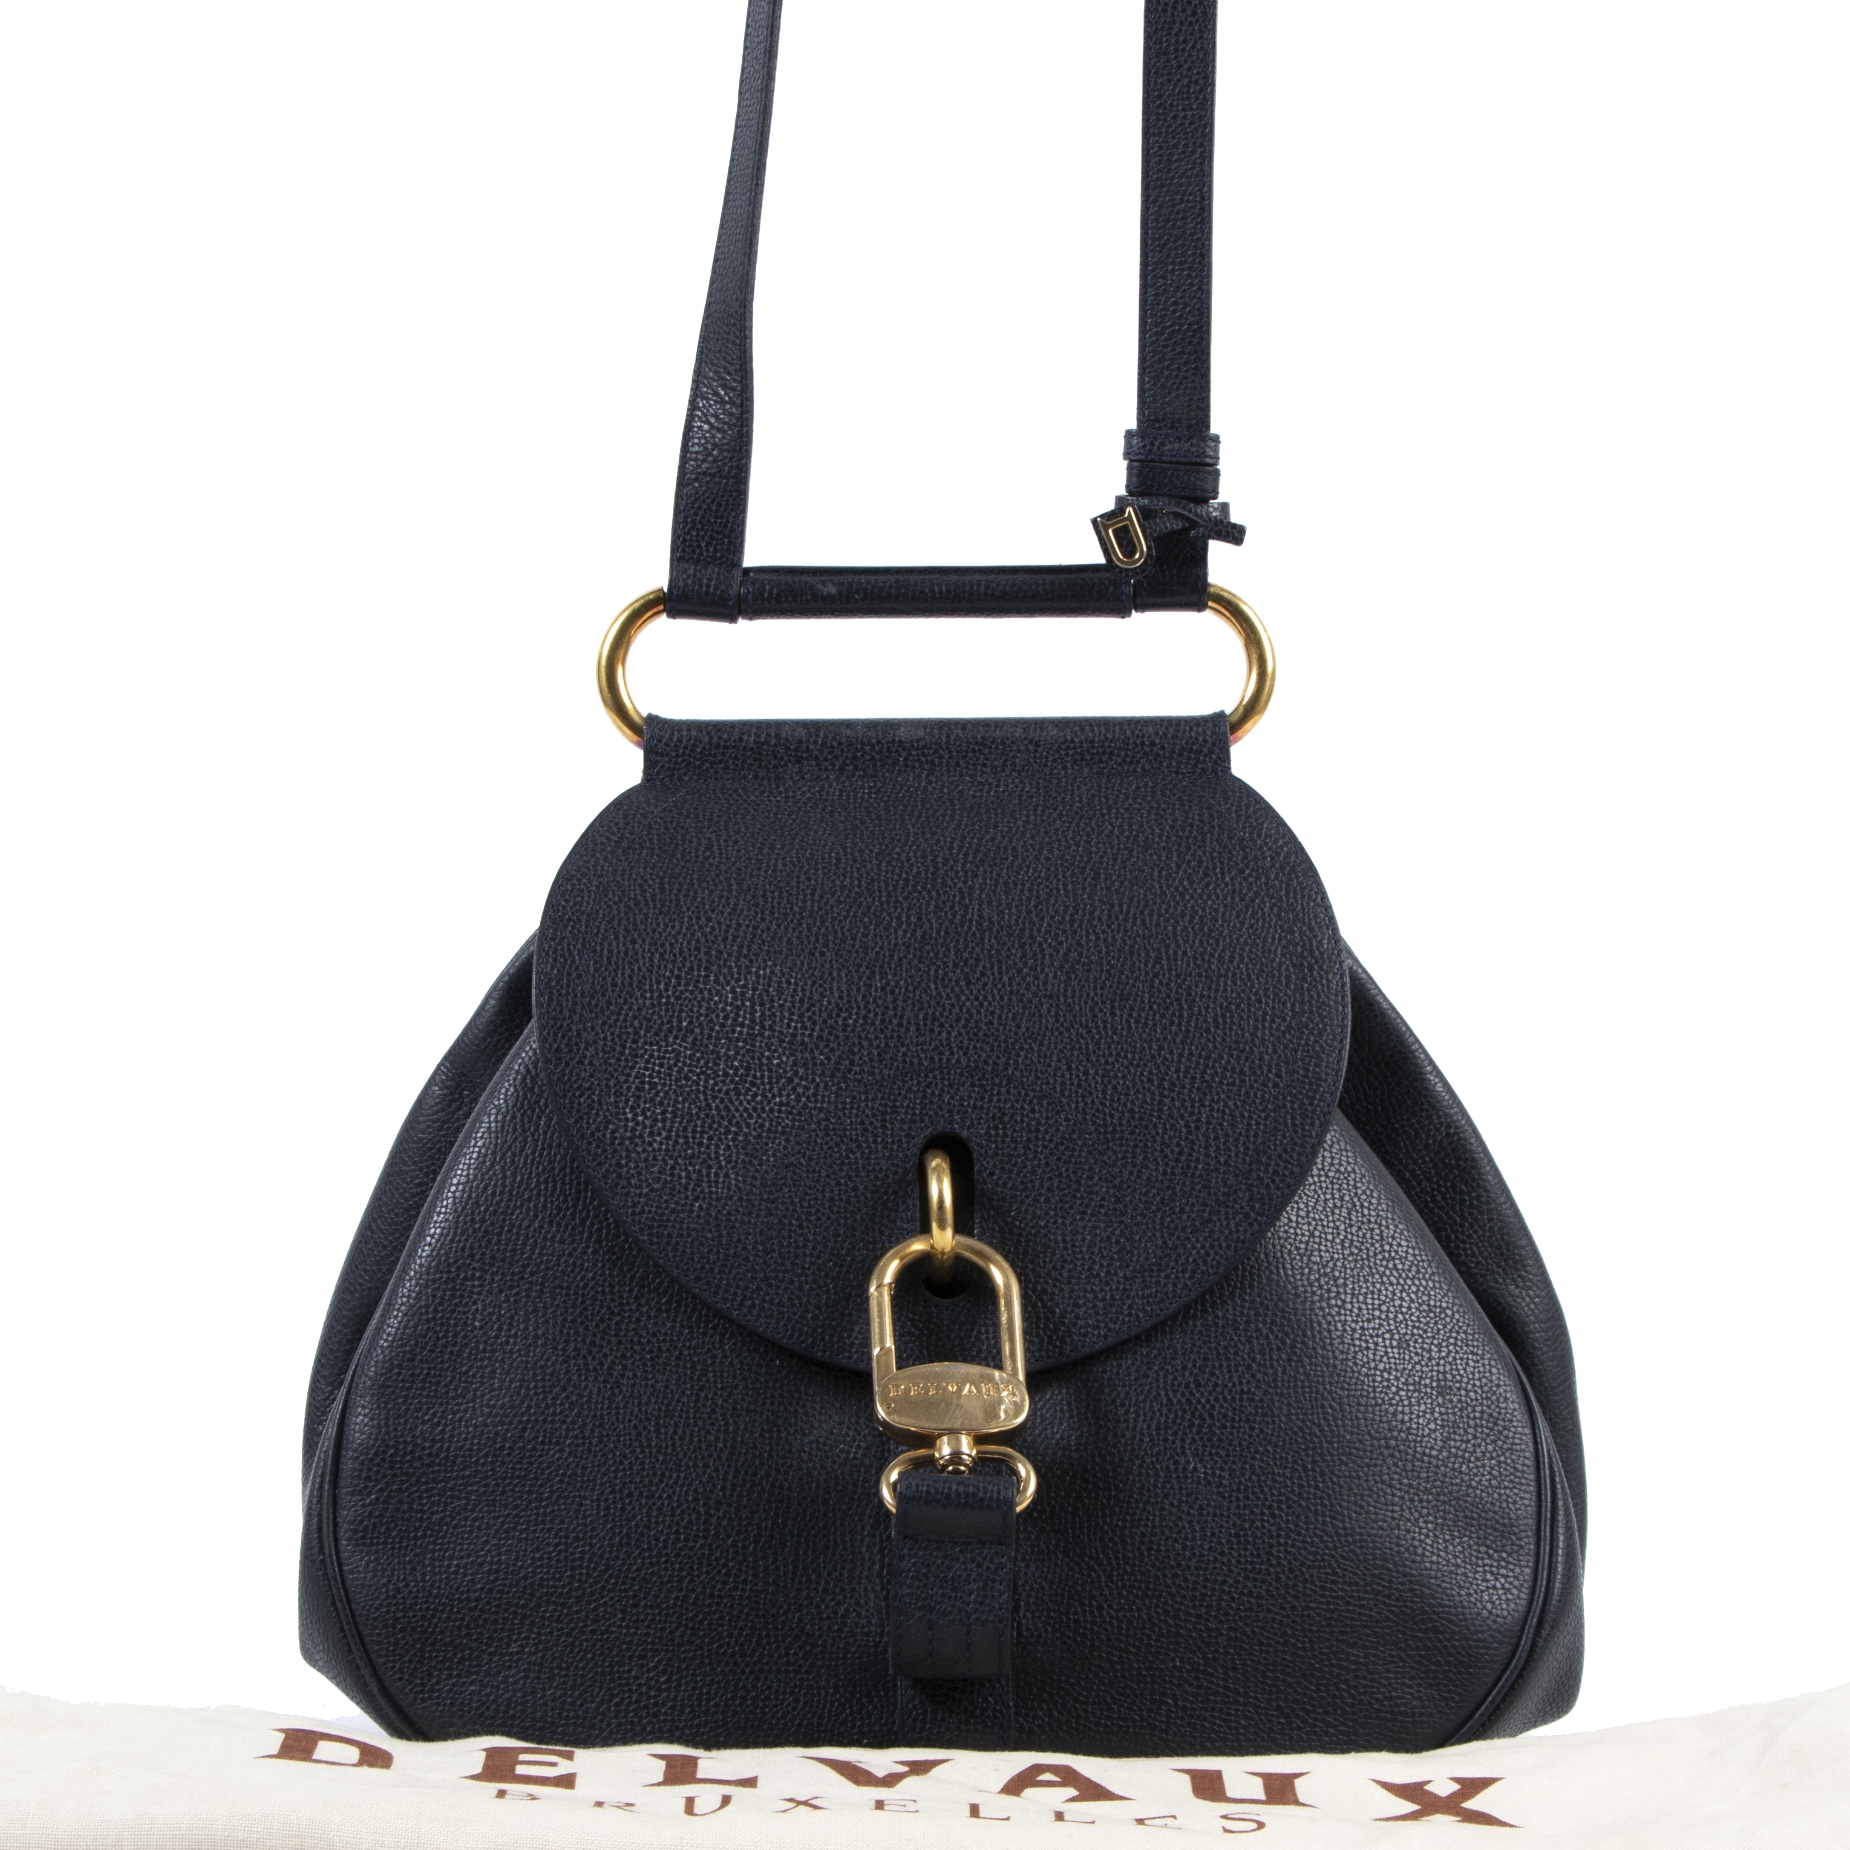 acheter enligne seconde main Delvaux Blue Cerceau Shoulder Bag